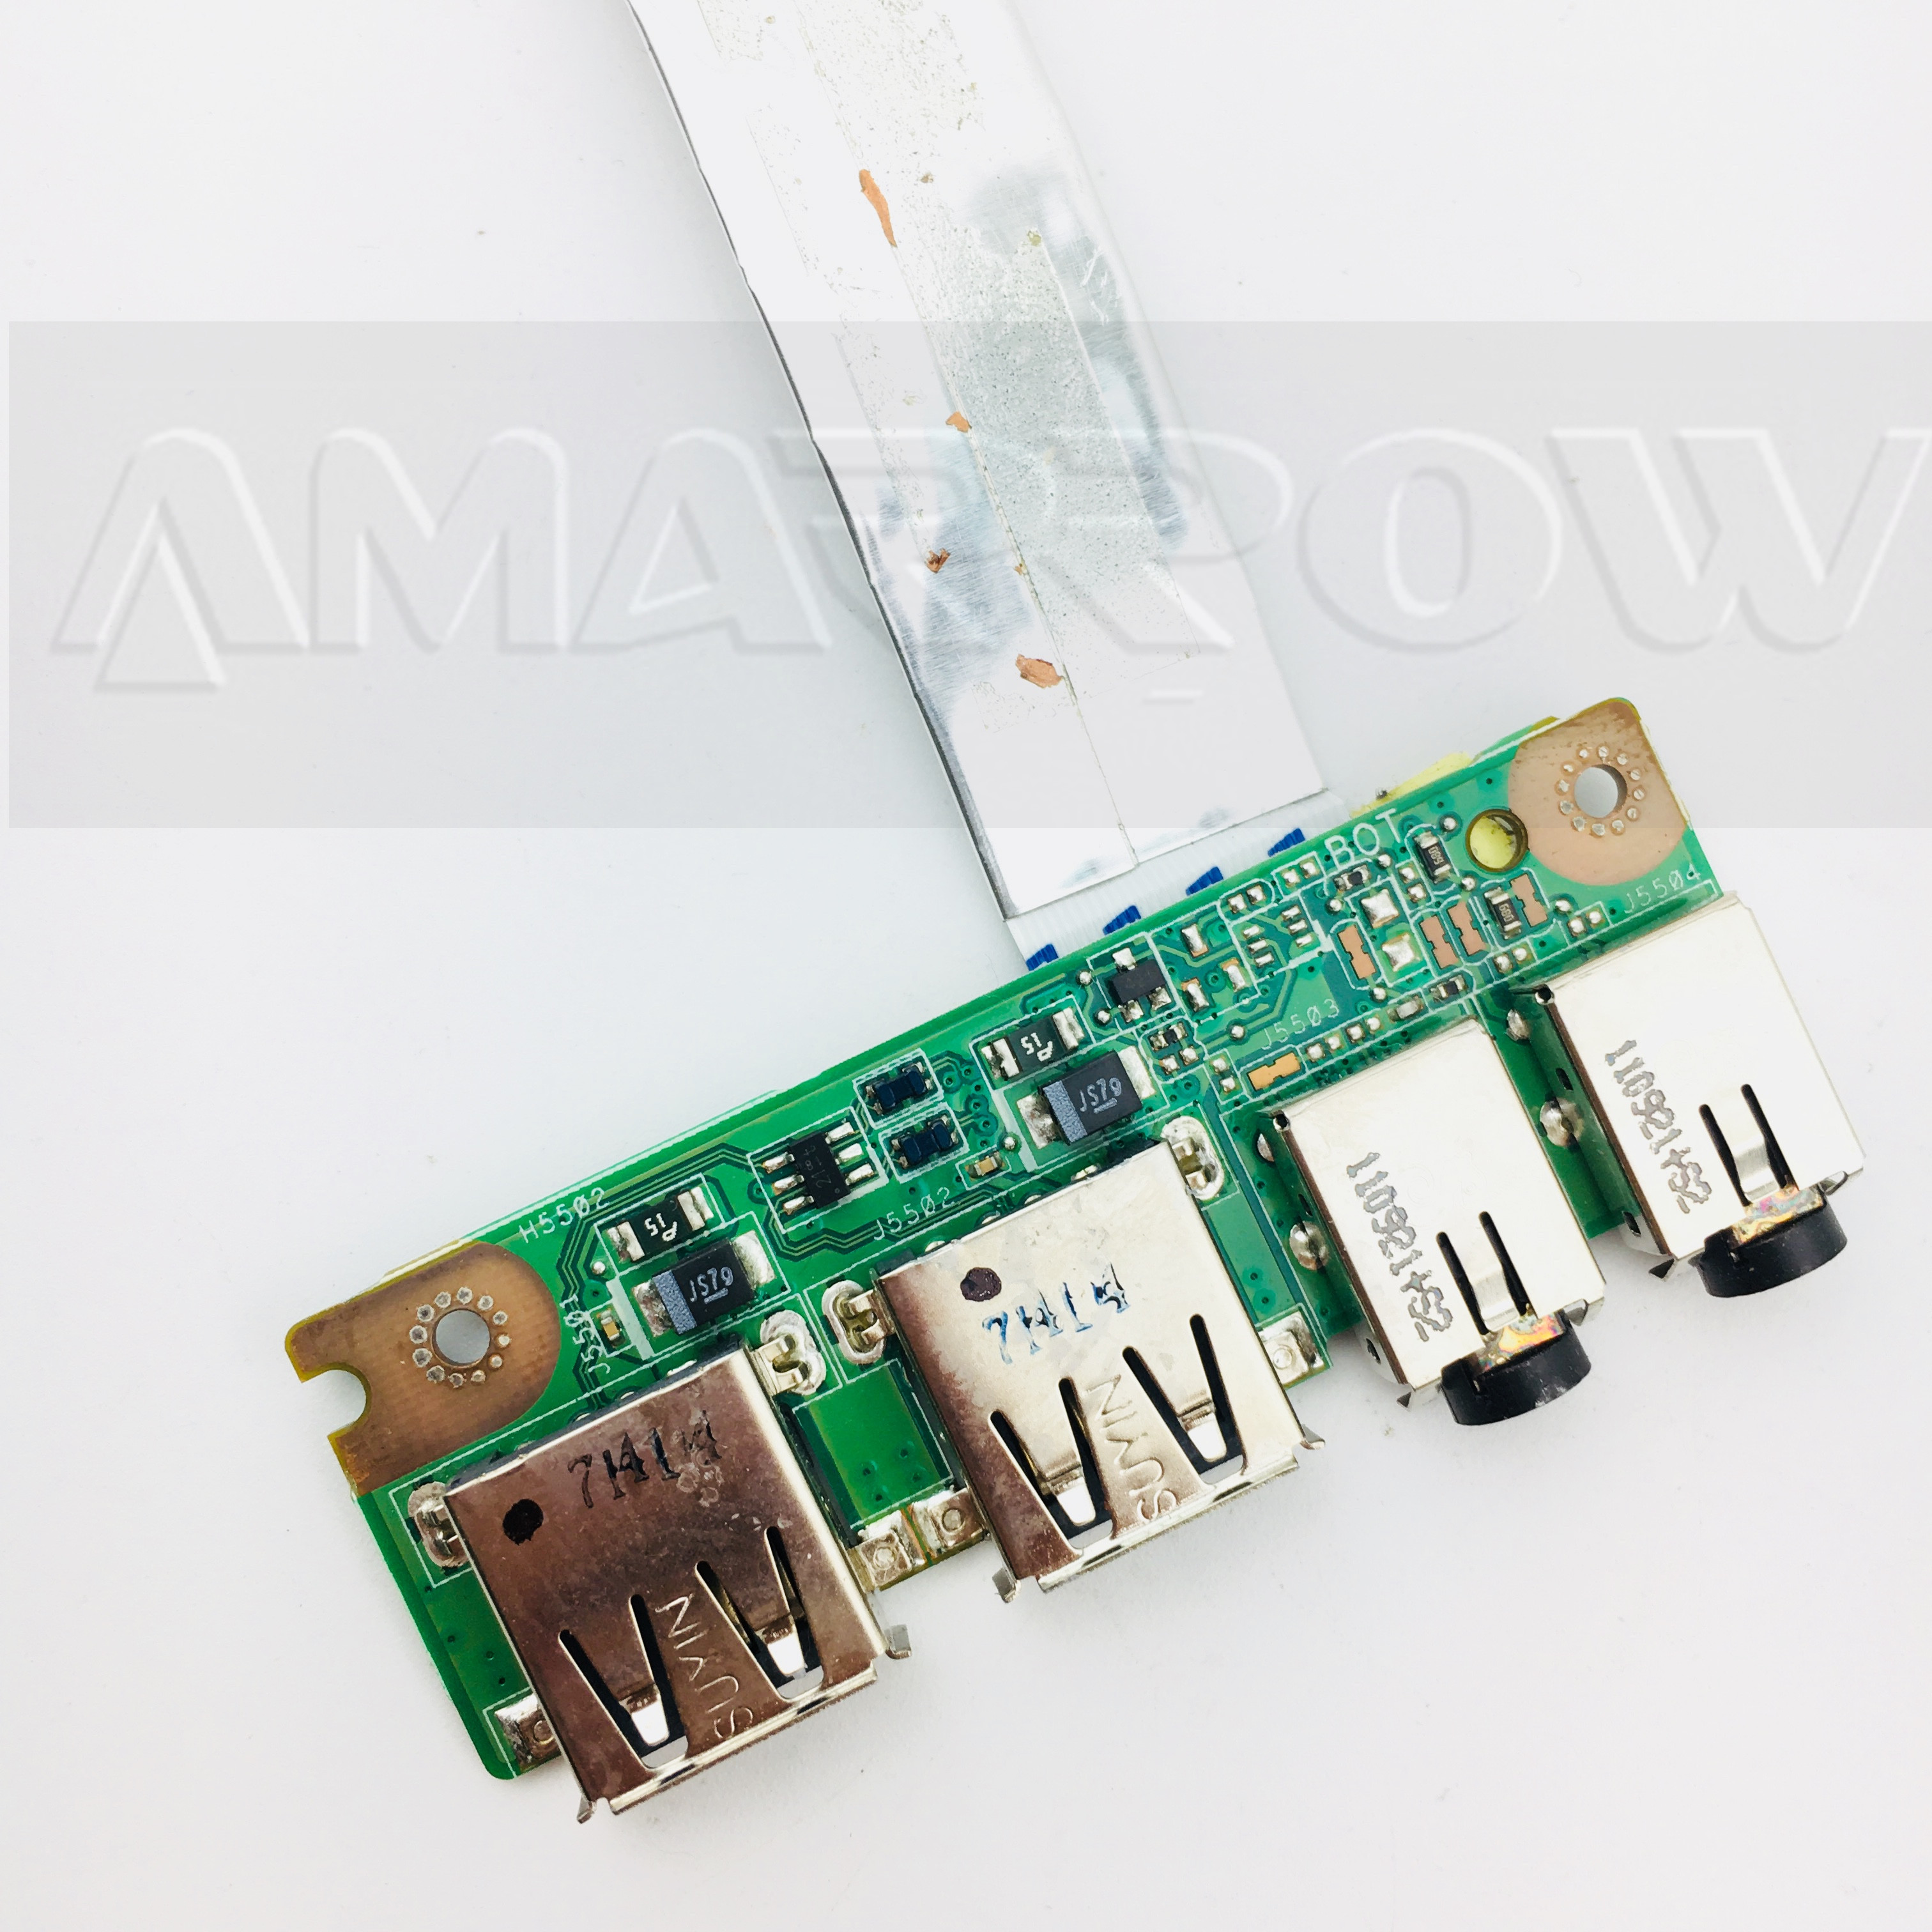 Original Free Shipping For Asus K53 K53SV A53S X53S K53S K53SD P53S P53Sj K53E X53E A53E USB AUDIO JACK Audio Board USB Board